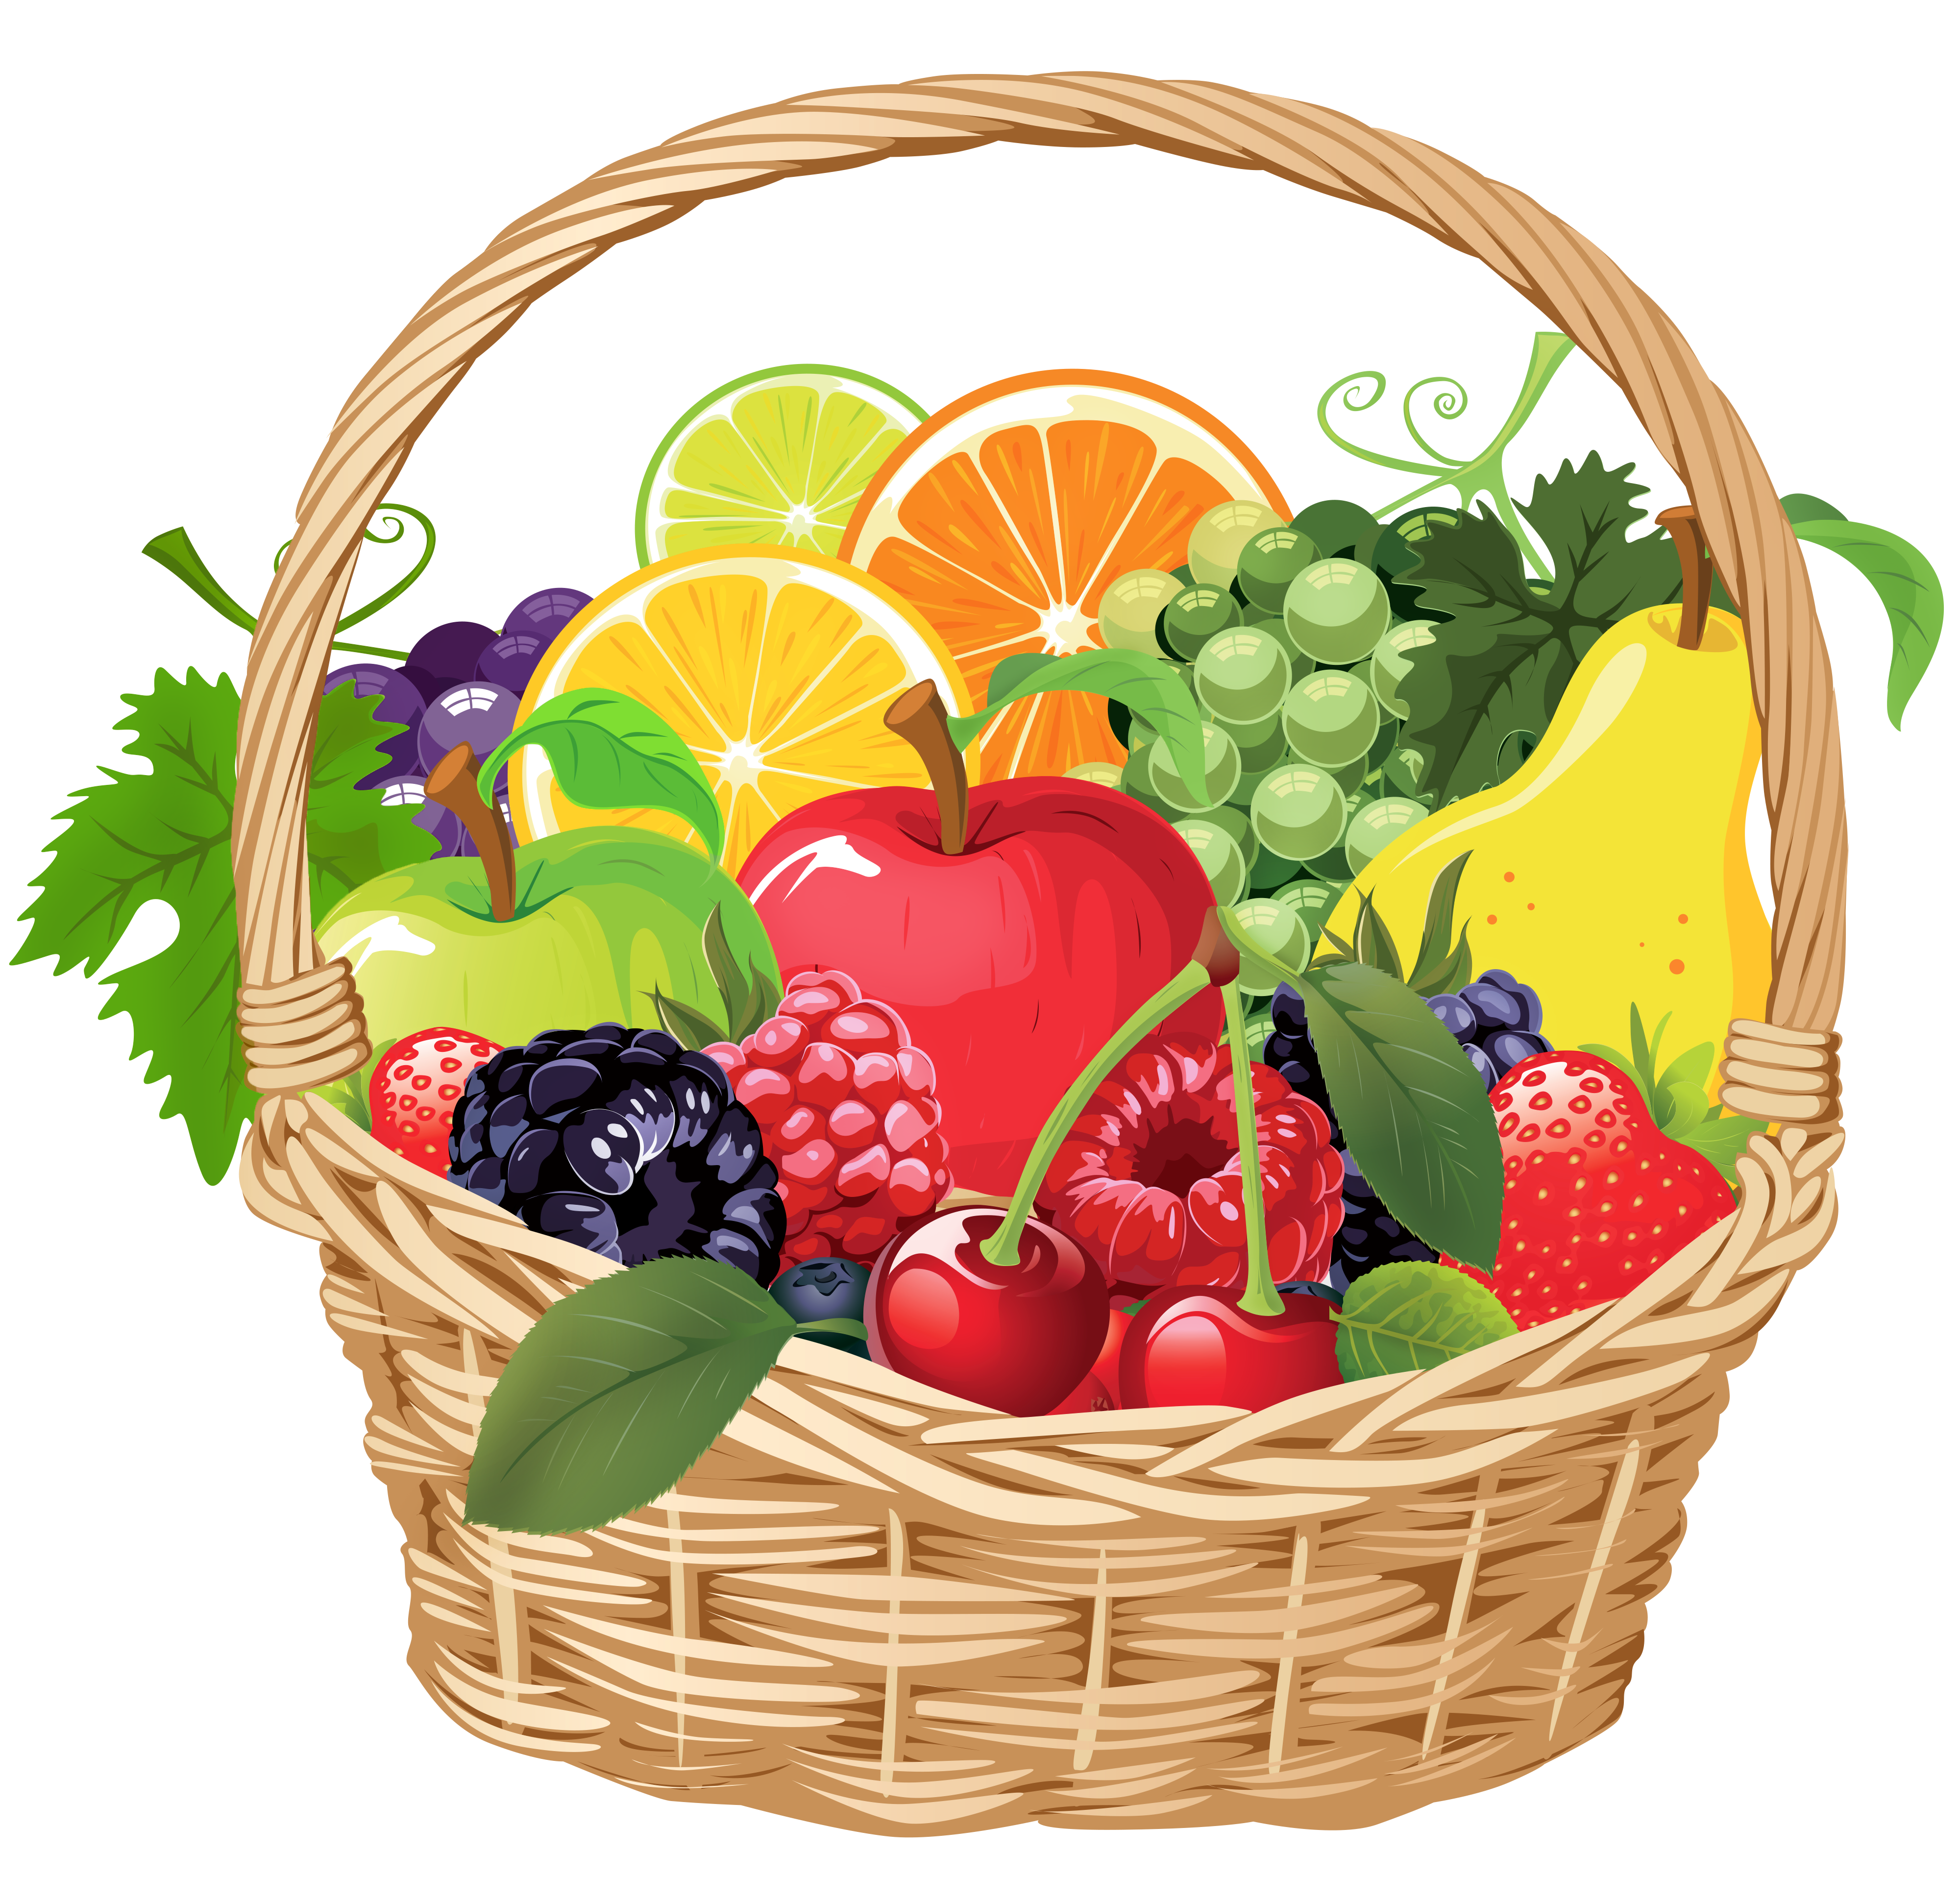 Christmas basket clipart image transparent 28+ Collection of Christmas Baskets Clipart | High quality, free ... image transparent